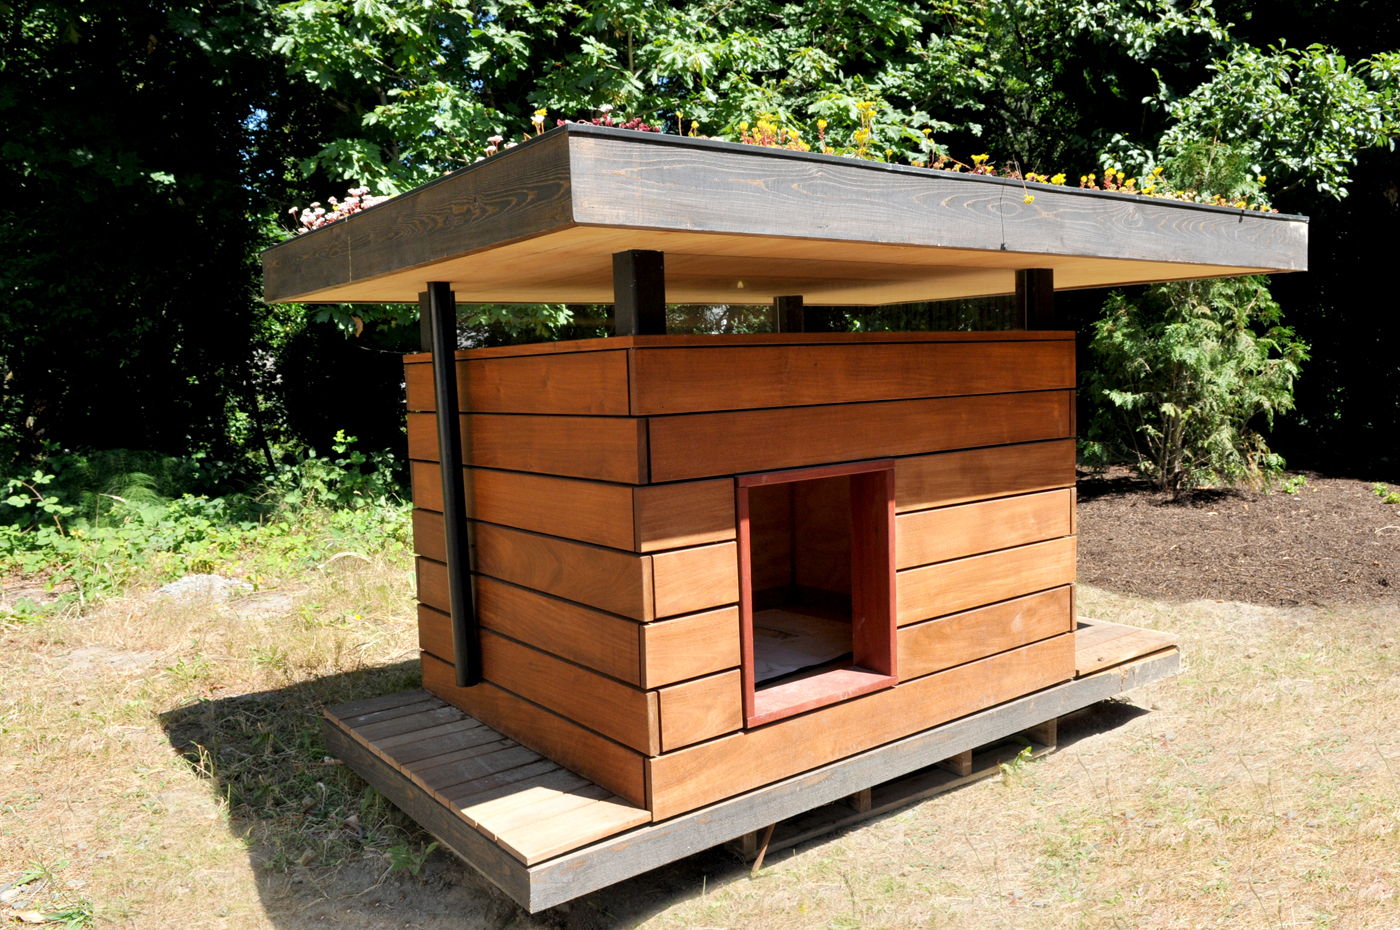 Home Design Ideas For Dogs: Seattle DJC.com Local Business News And Data